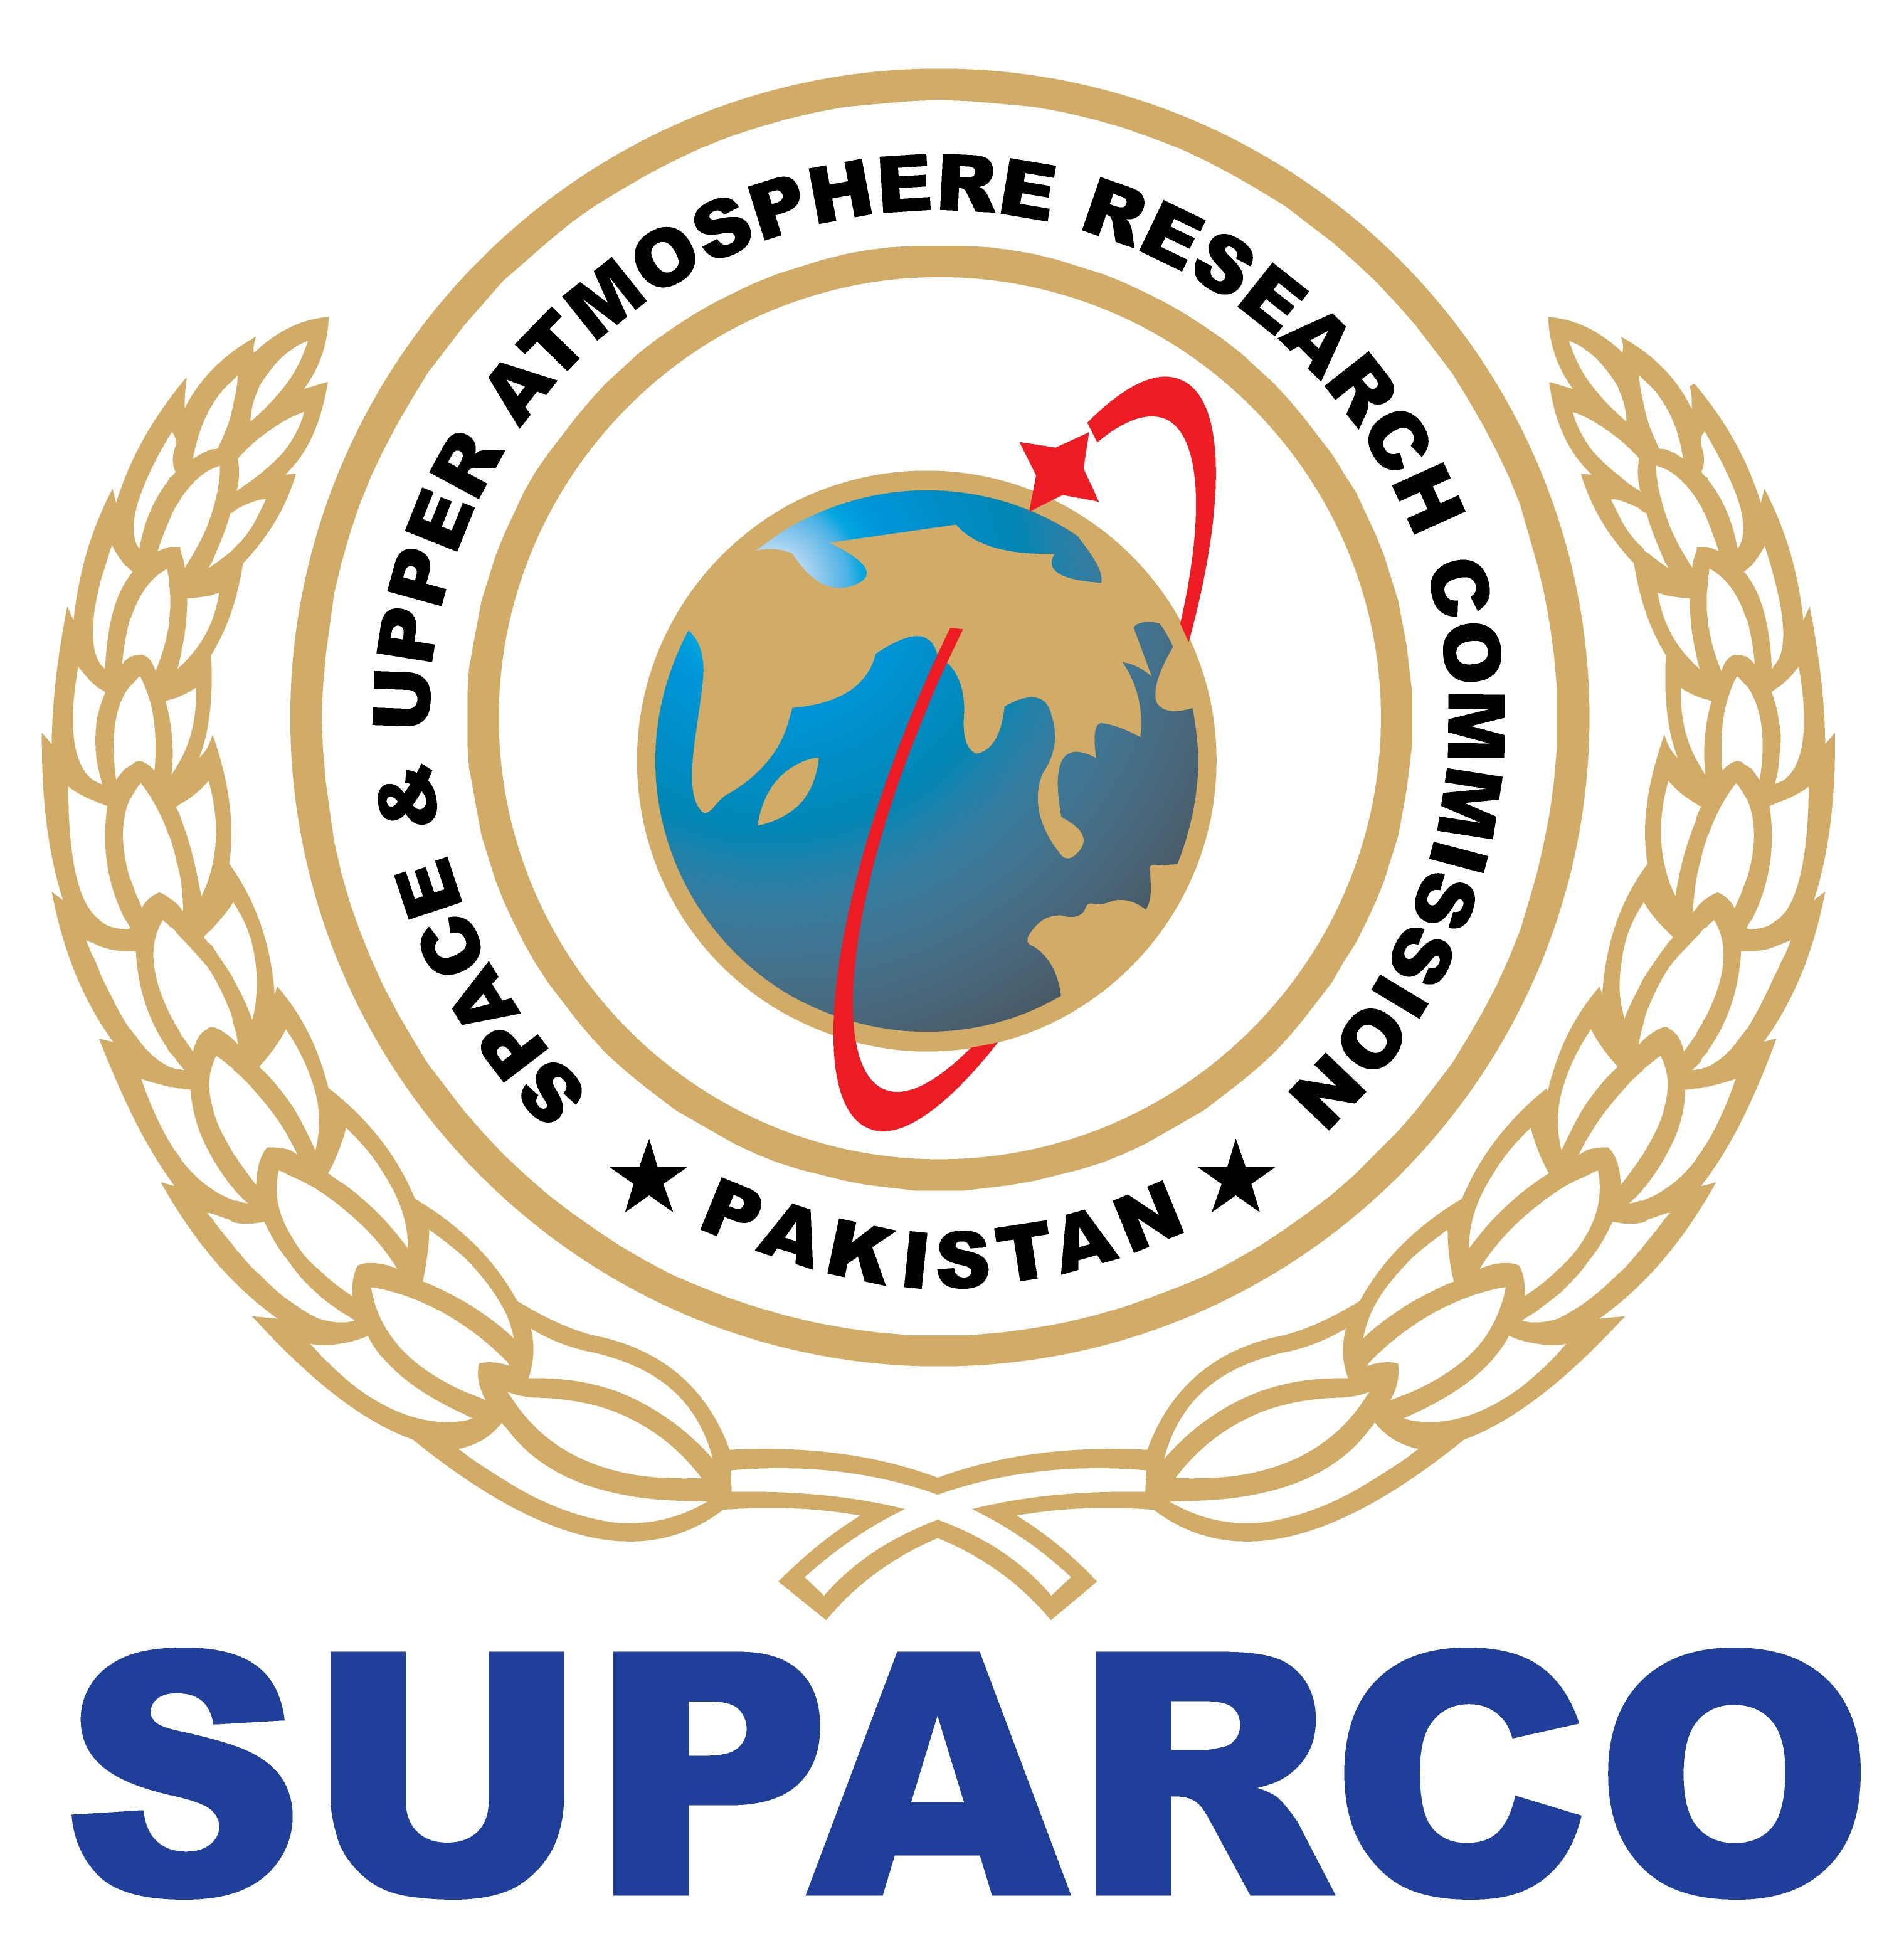 """The Pakistan Space and Upper Atmosphere Research Commission (SUPARCO) and the China Great Wall Industry Cooperation (CGWIC) have signed an agreement to develop and launch of the """"Pakistan Remote Sensing Satellite (PRSS-1) System, a Pakistani news daily reported."""